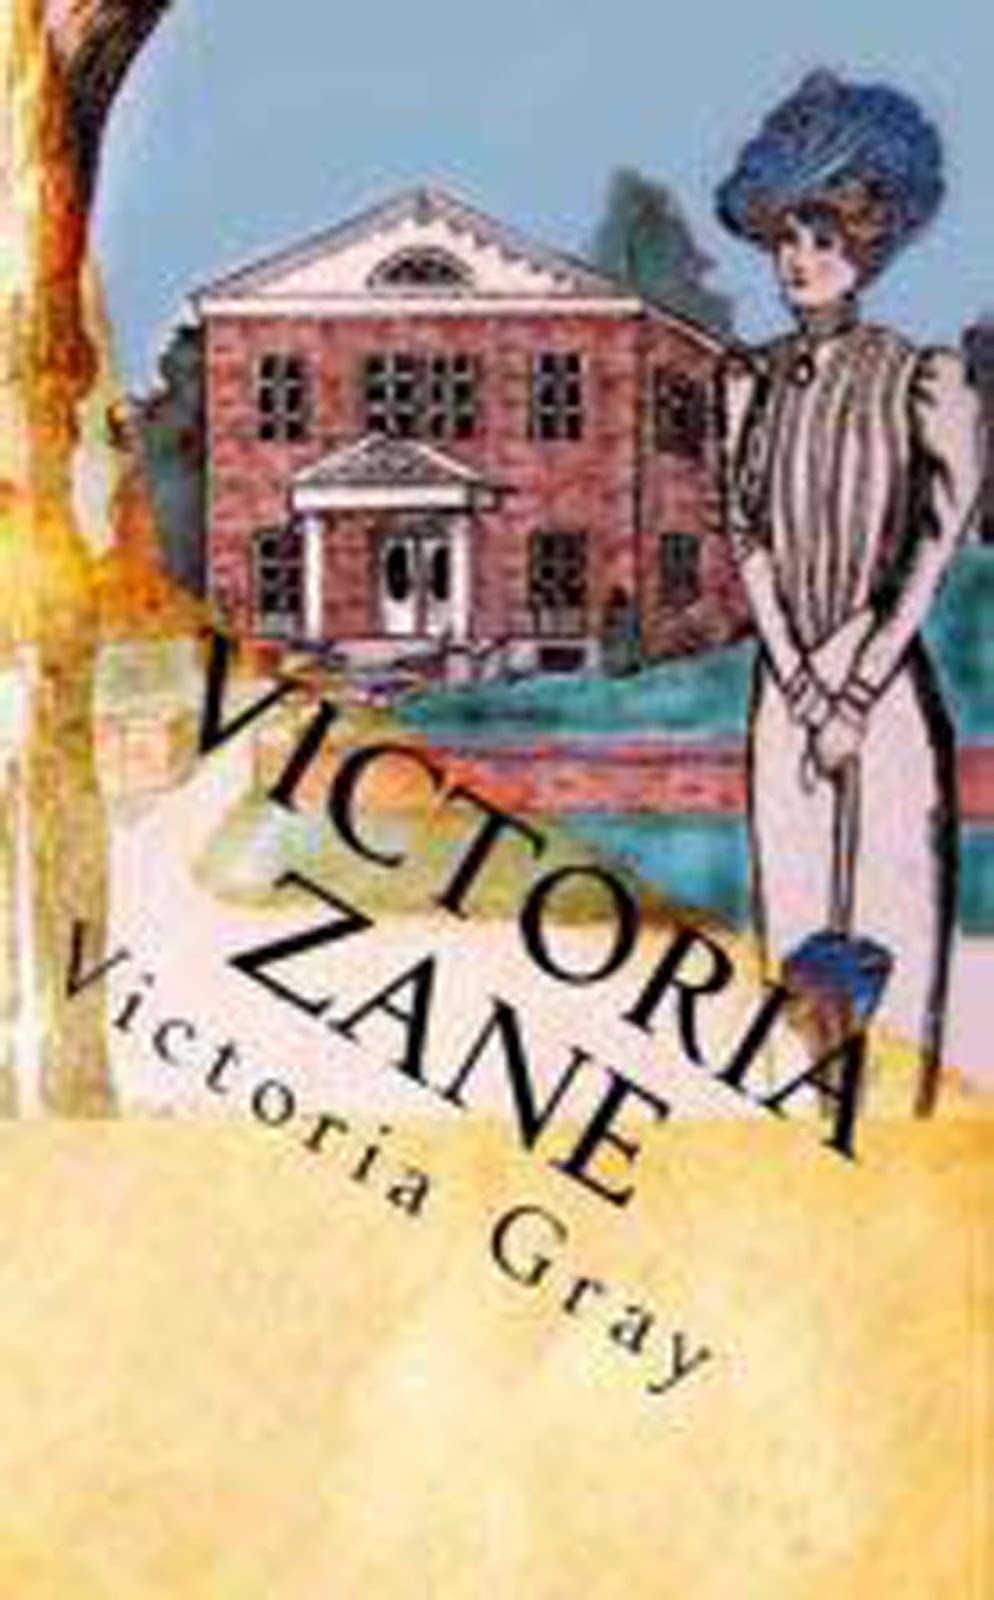 http://www.amazon.com/Victoria-Zane-dream-based-story/dp/1456423371/ref=sr_1_2?ie=UTF8&qid=1401550099&sr=8-2&keywords=Victoria+Zane